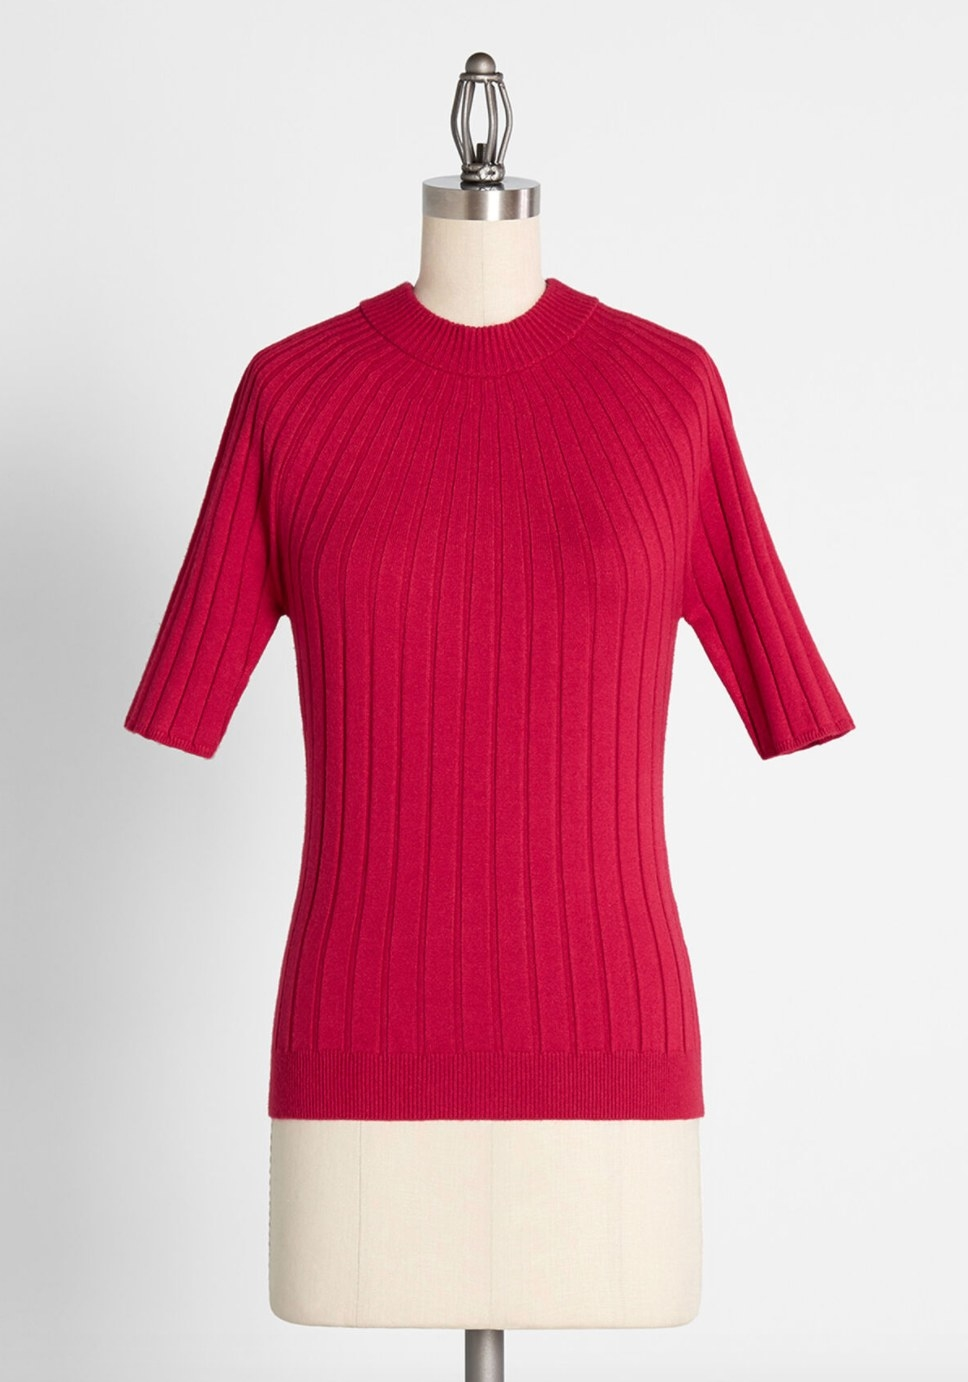 The mockneck sweater in red